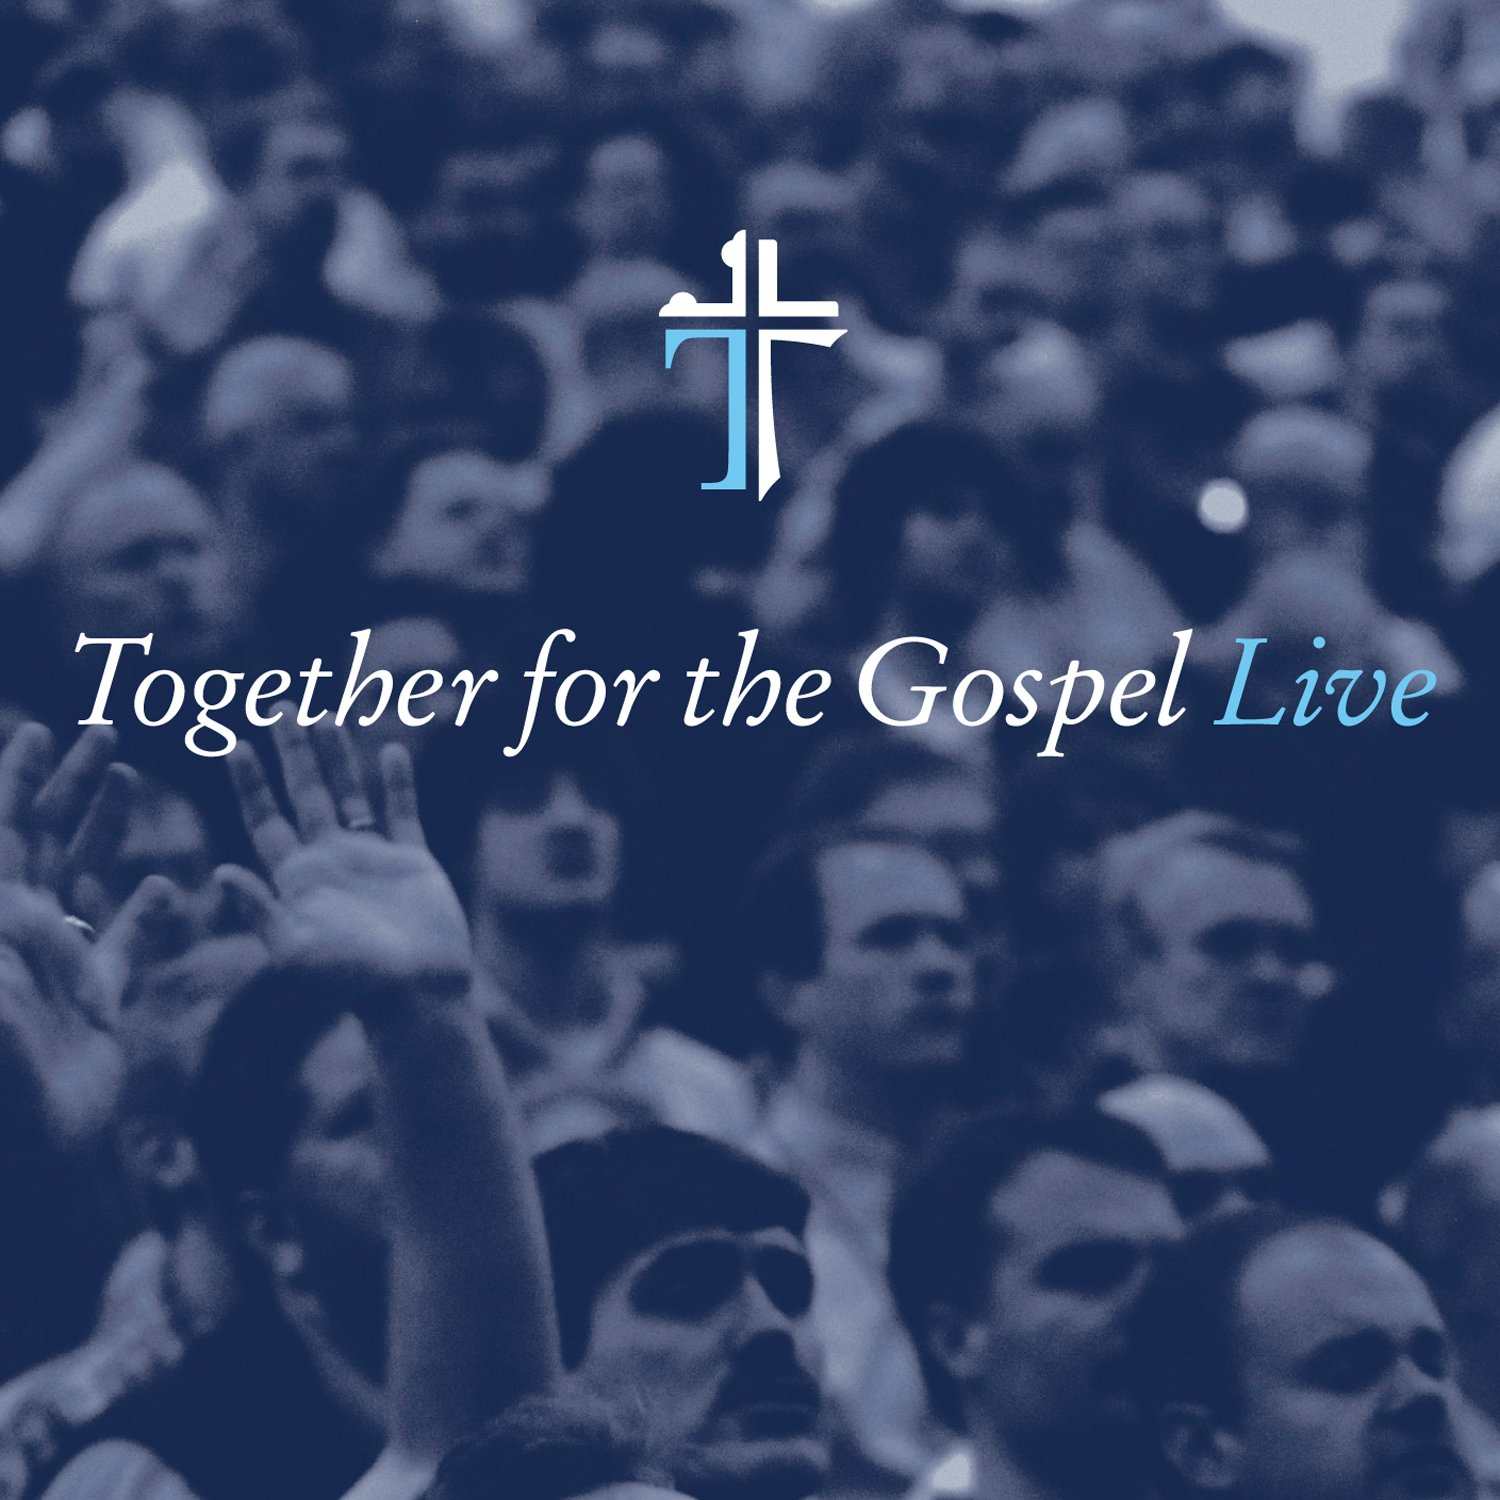 Together for the Gospel Live by Sovereign Grace Music/ Integrity Music